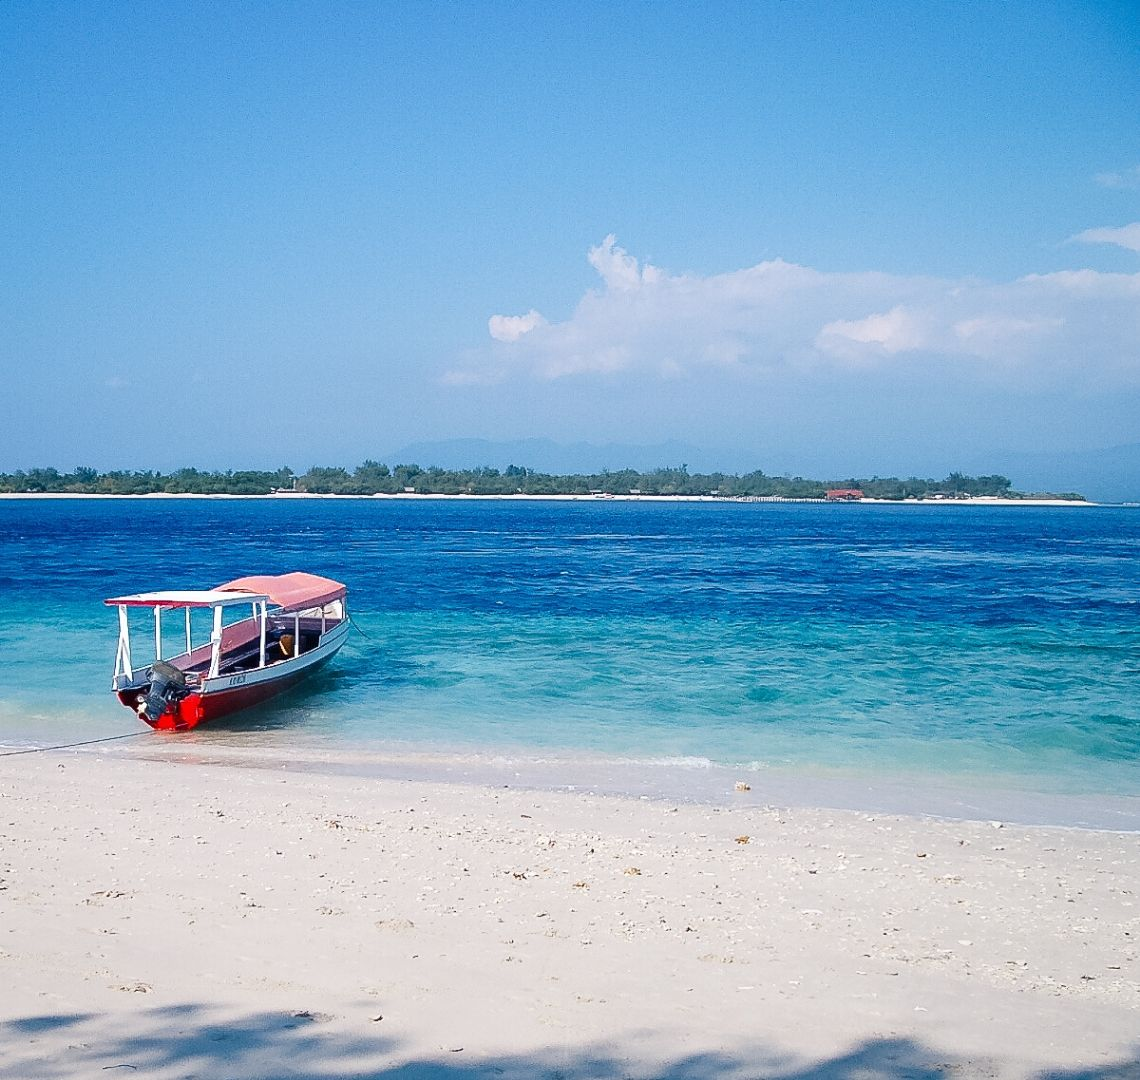 Best Secret Islands in Indonesia - white white sand leads to turquoise water which then turns a deeper but bright blue. In the distance is another island with a thin white strip of sand and some trees and a building. In the shallows on this side, just pulled up to the beach is a red bottomed boat with white sides and a faded red roof.